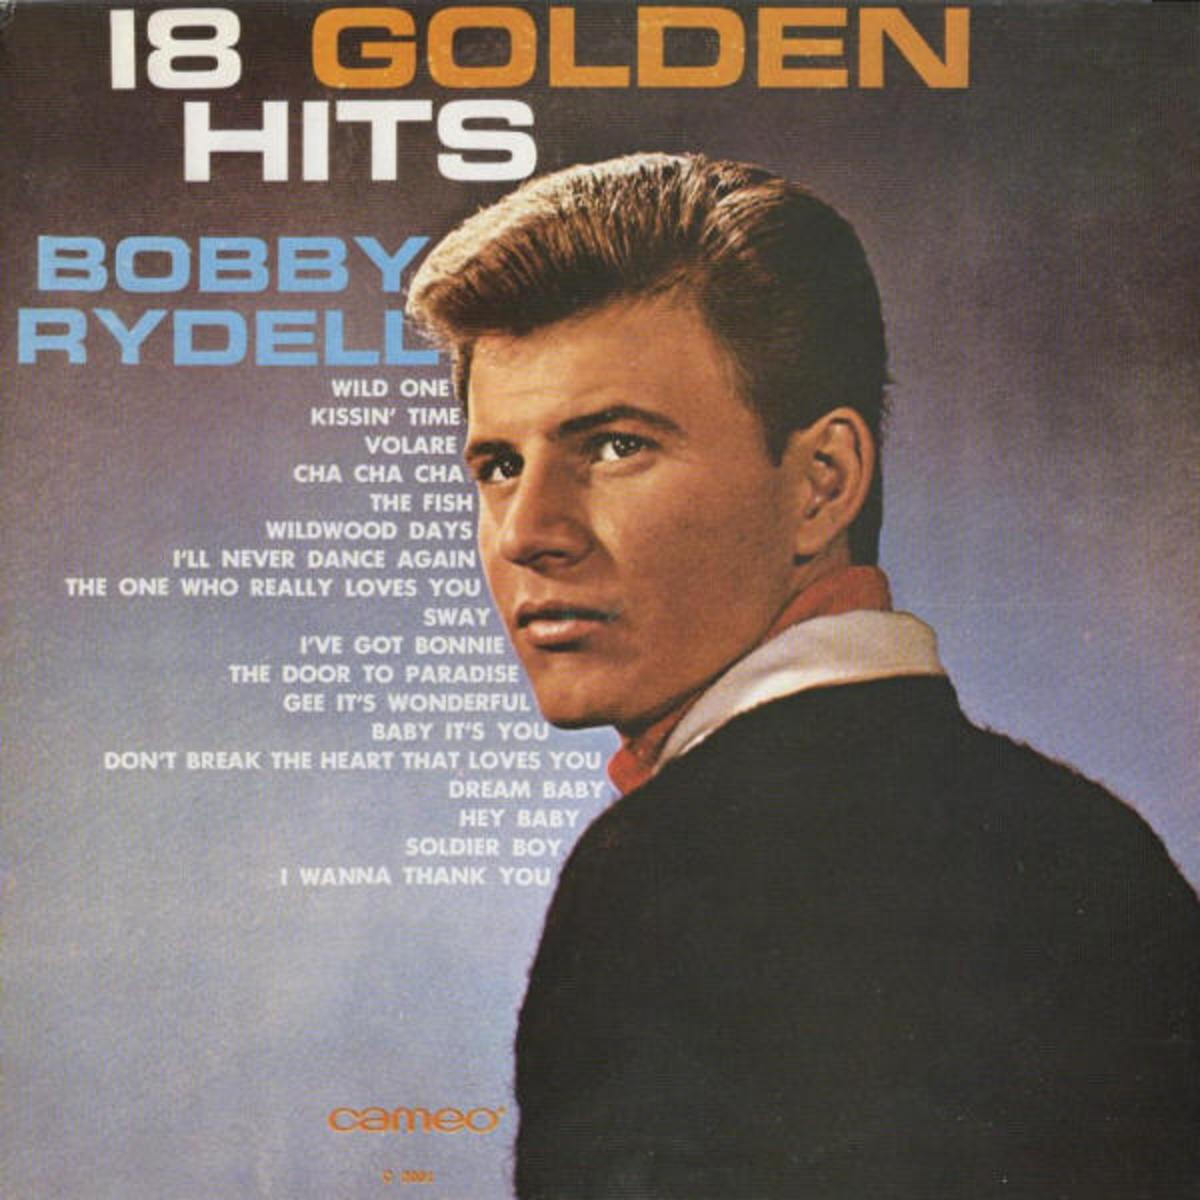 Teen idol Bobby Rydell covered 'Sway' in 1960